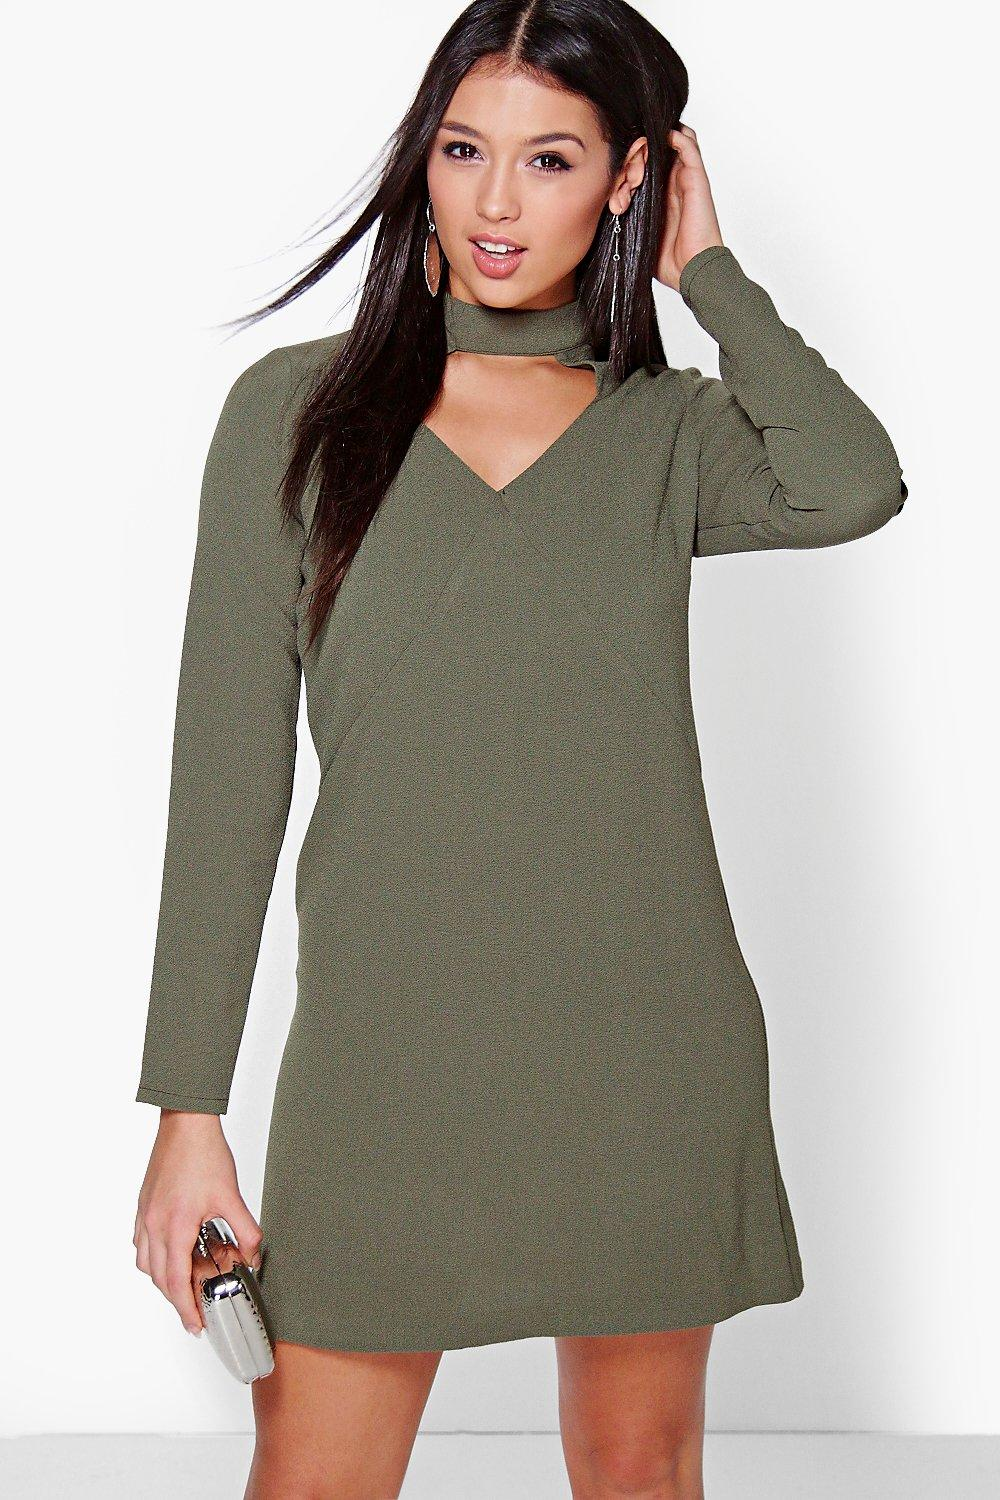 675384cf386 Penelope Choker Plunge Shift Dress. Hover to zoom